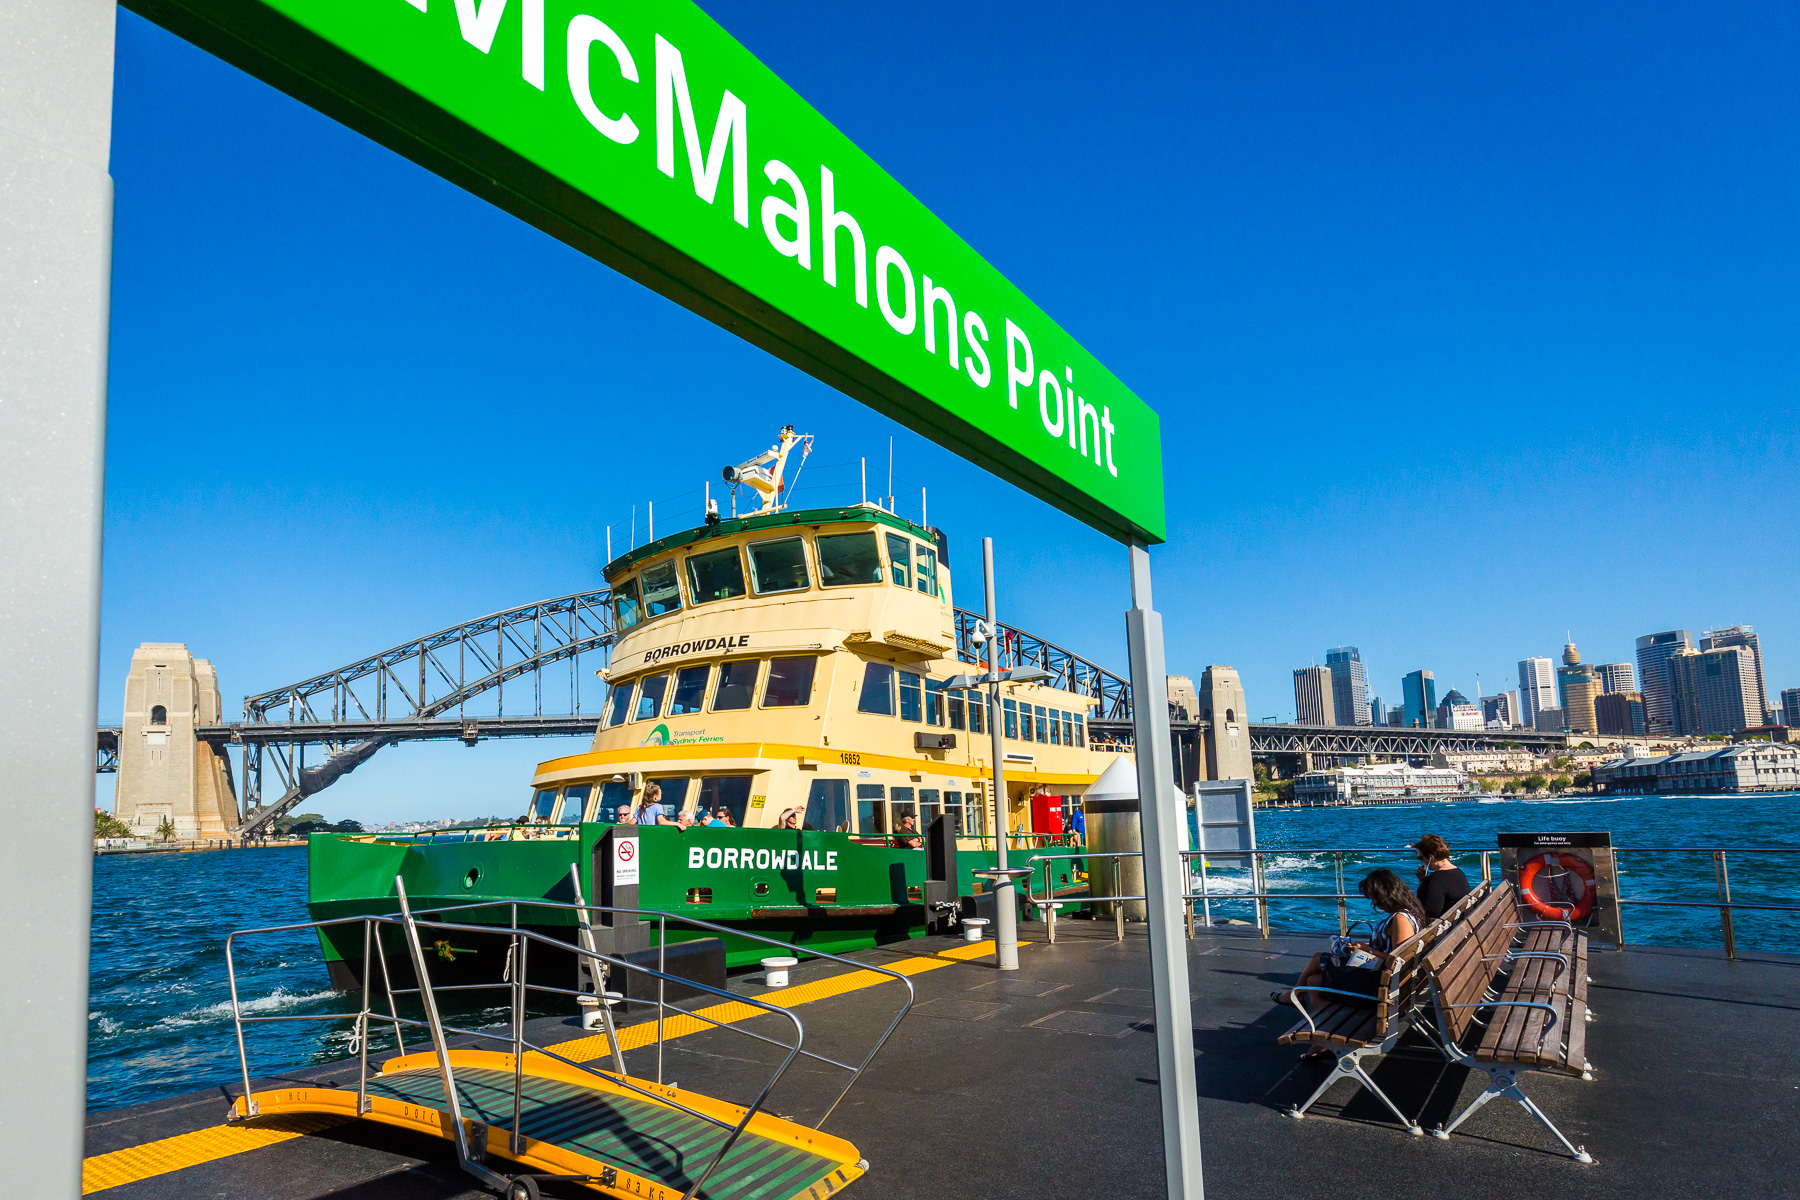 McMahons Point ferry wharf - 8 minutes walk away from our home.